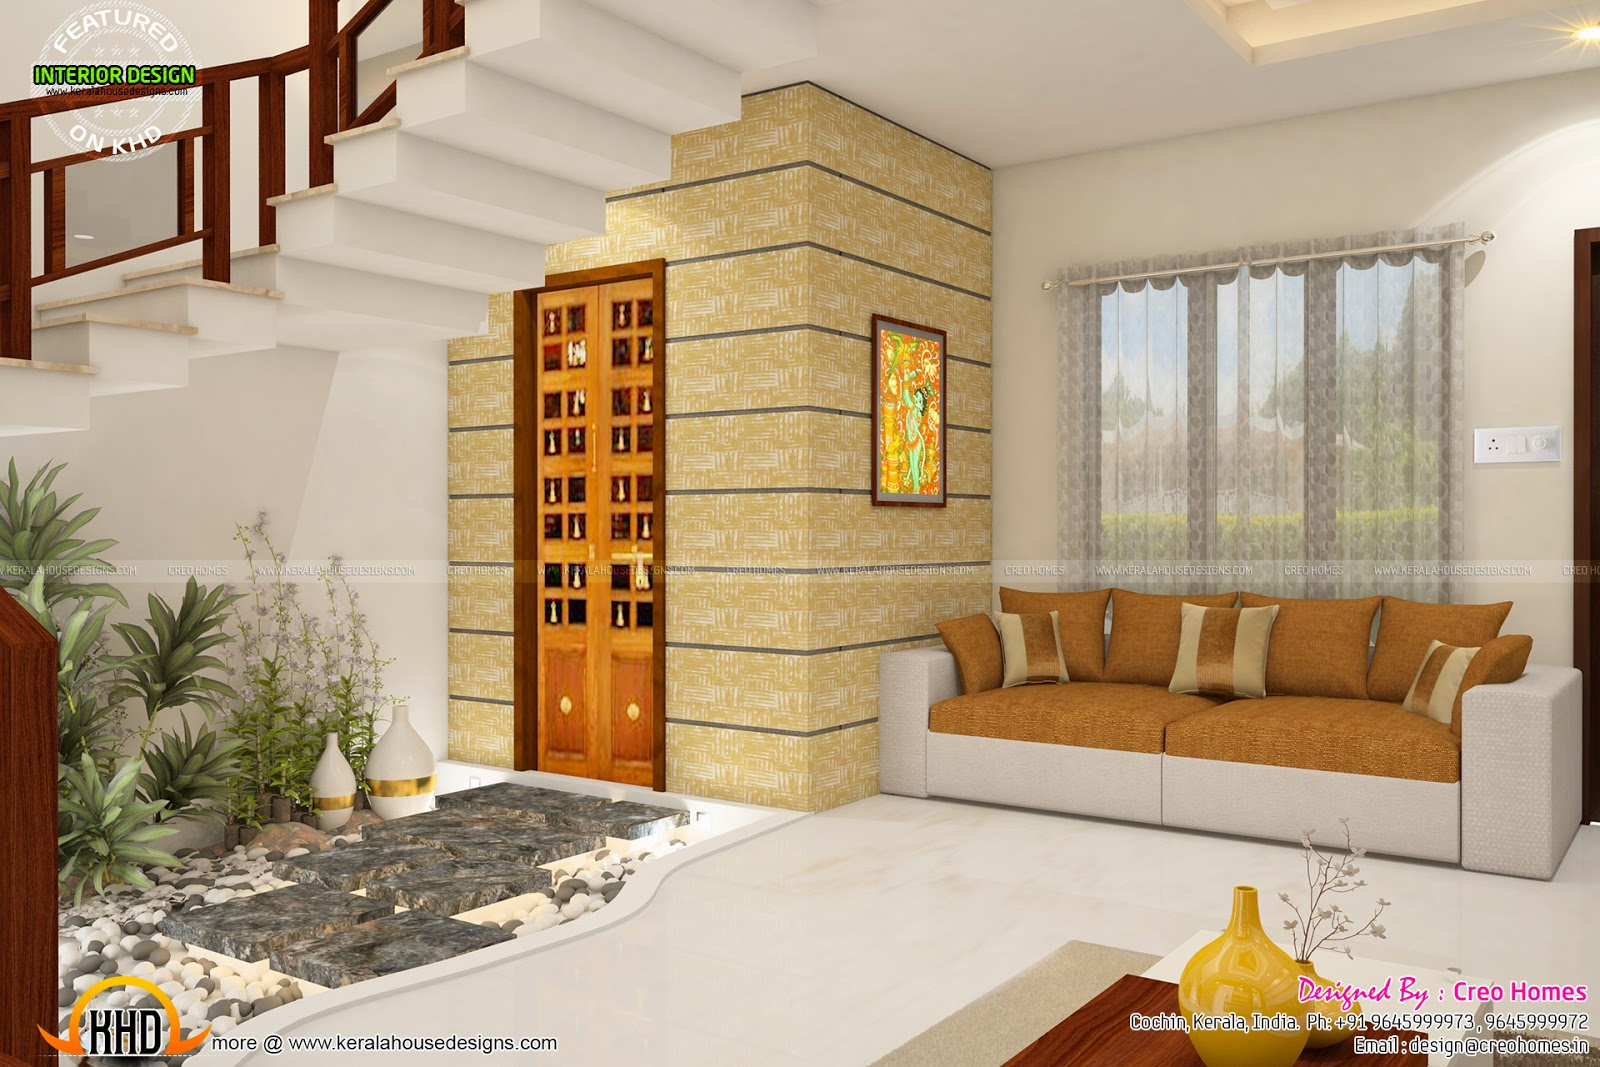 Total home interior solutions by creo homes kerala home for Interior house plans with photos